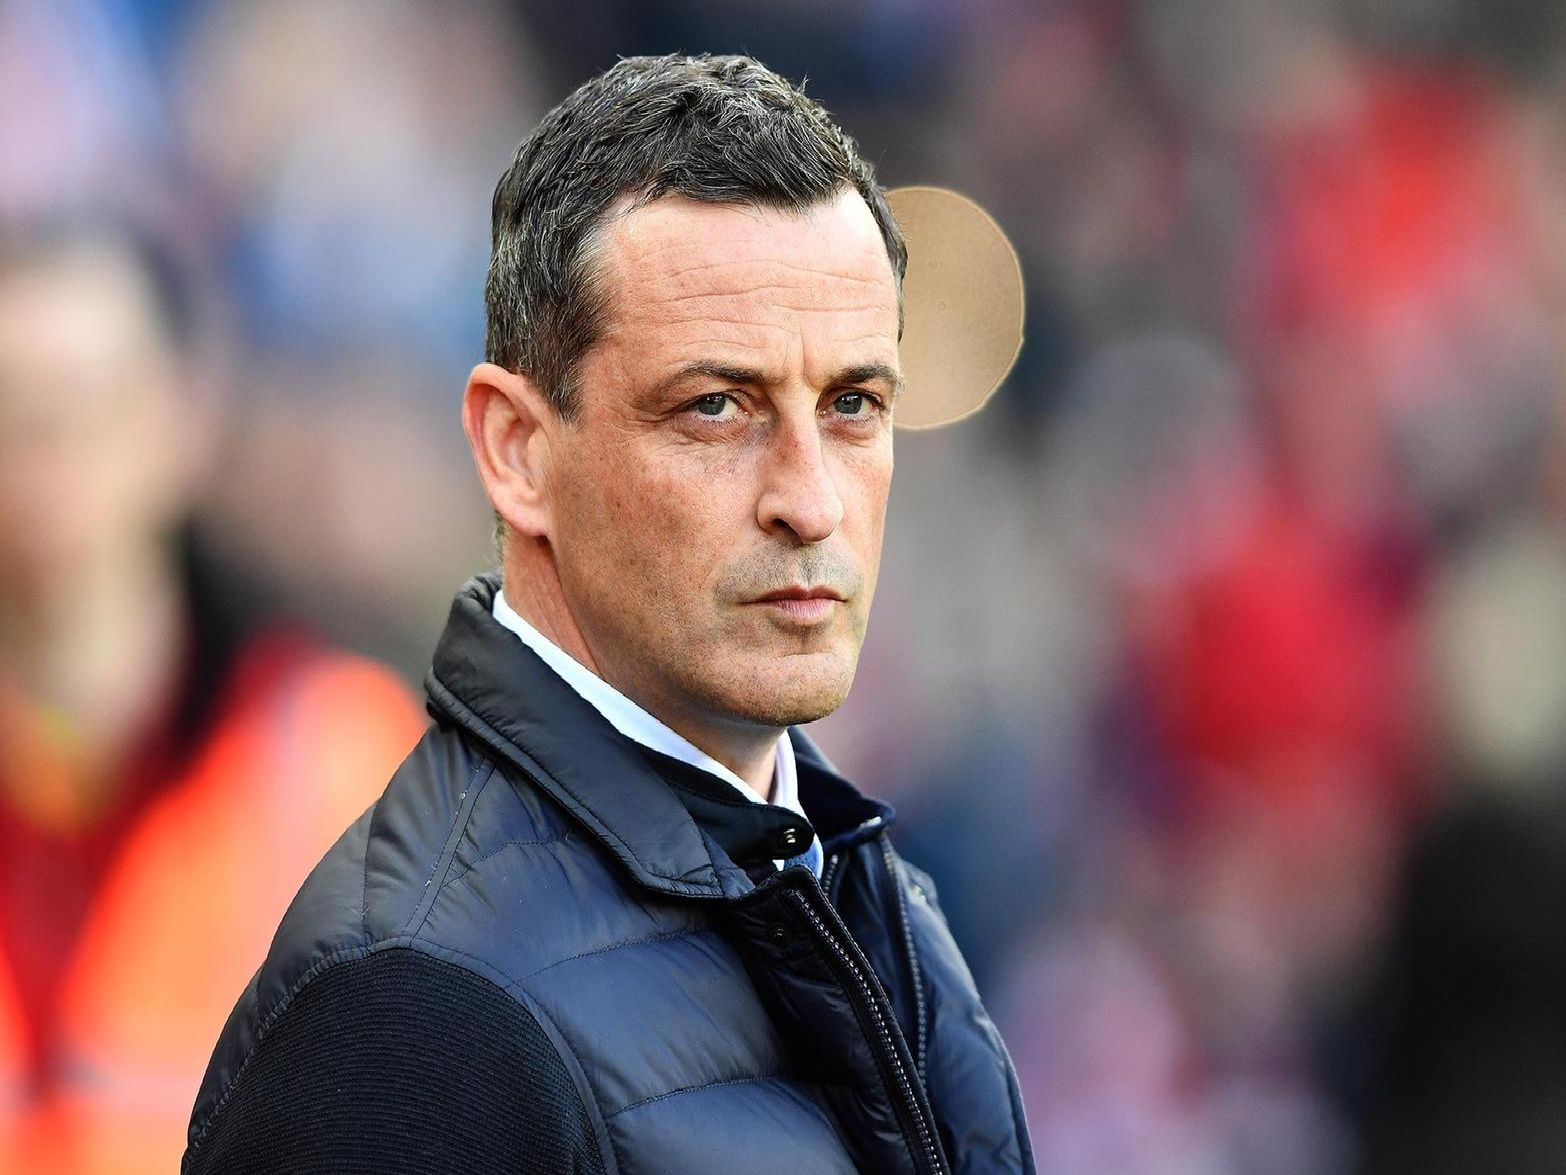 Sunderland will take a 1-0 lead into the second leg of their League One play-off semi-final against Portsmouth.